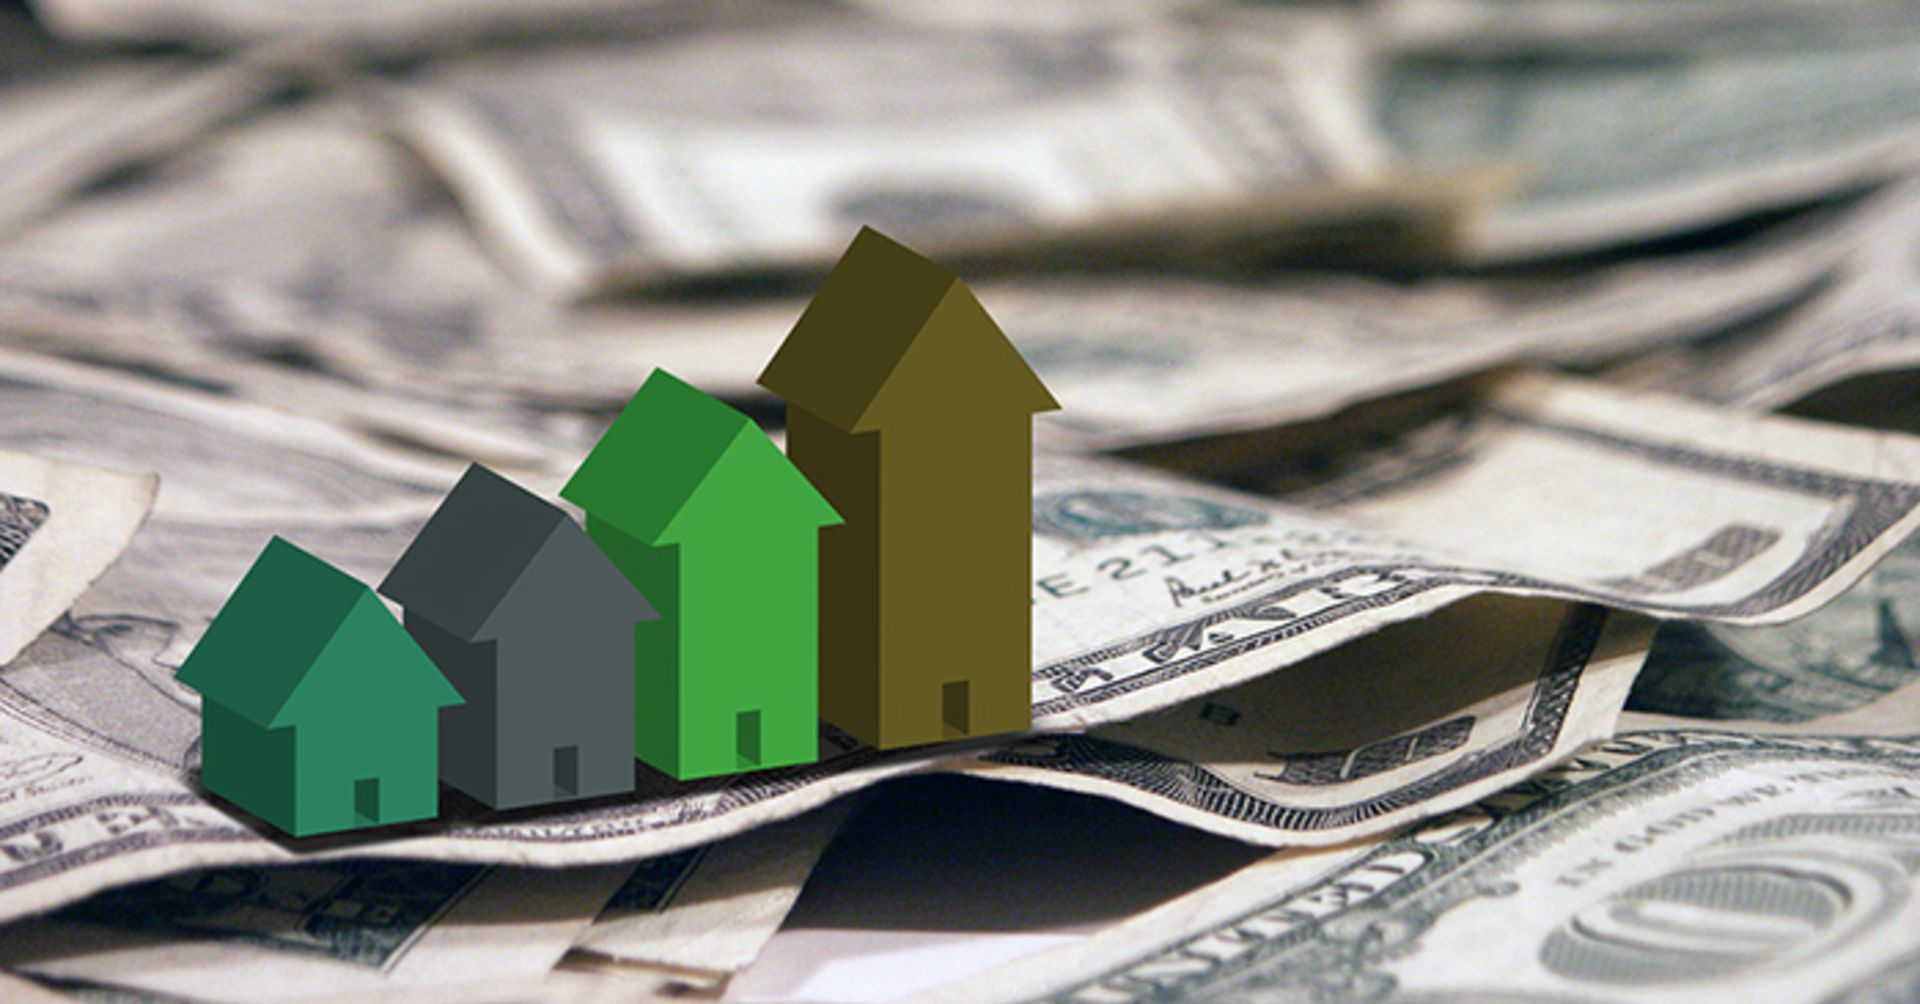 Less than 5% of homes Have Negative Equity, Now is the Time to SELL